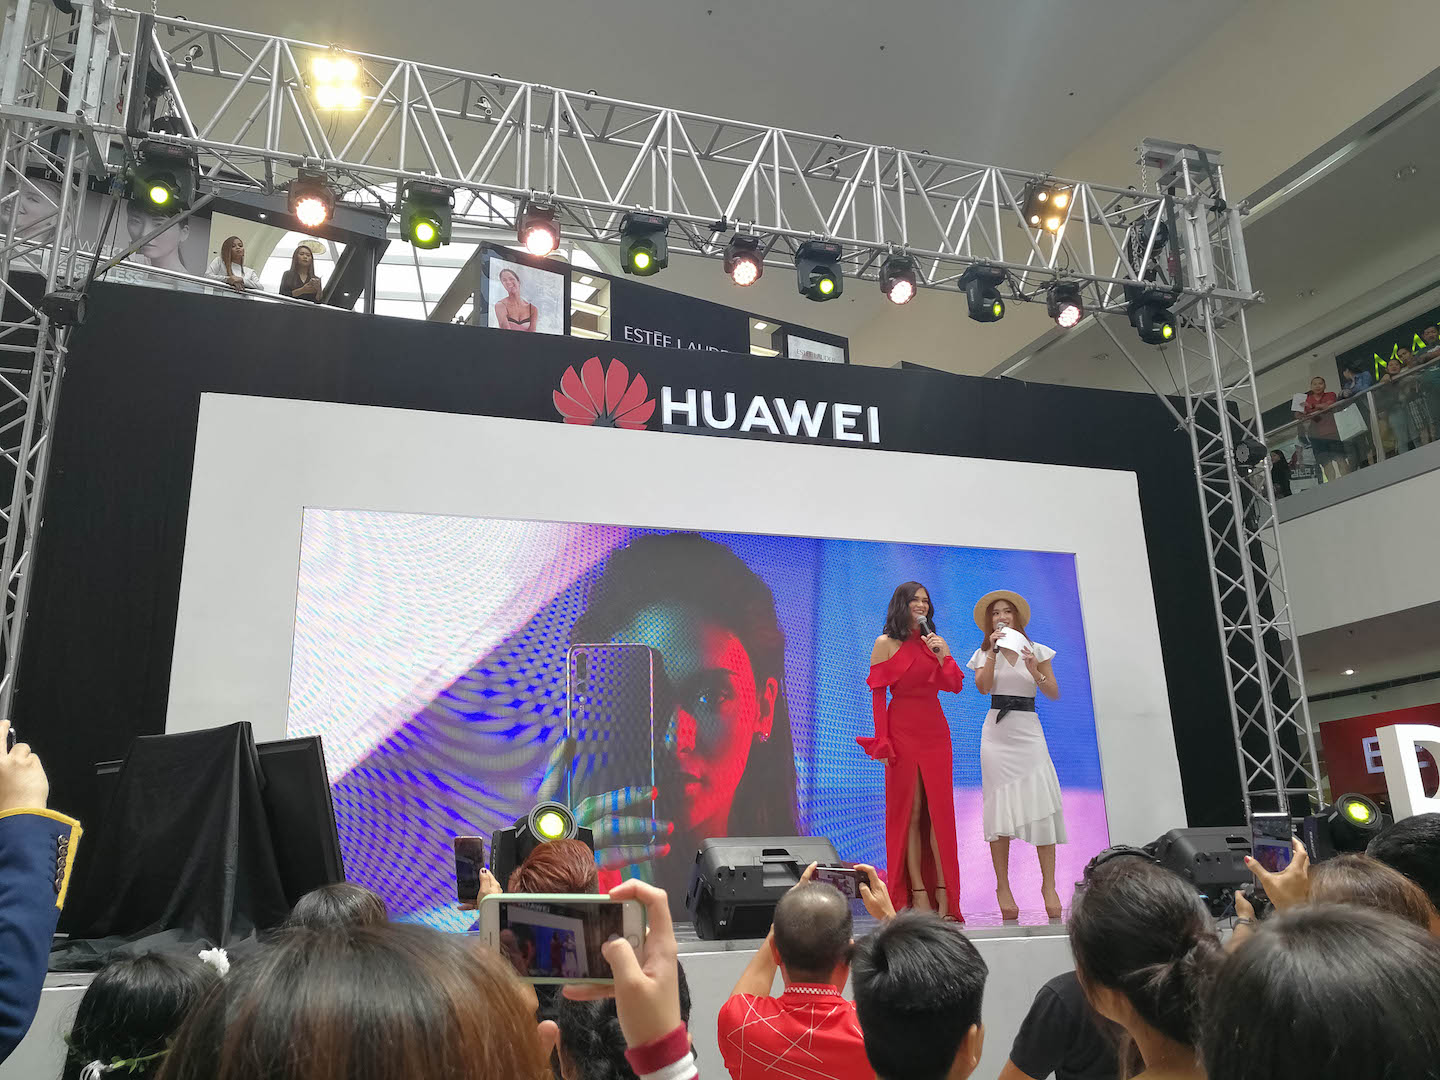 Huawei P20 Series Is Now Official, Prices and Promos Revealed